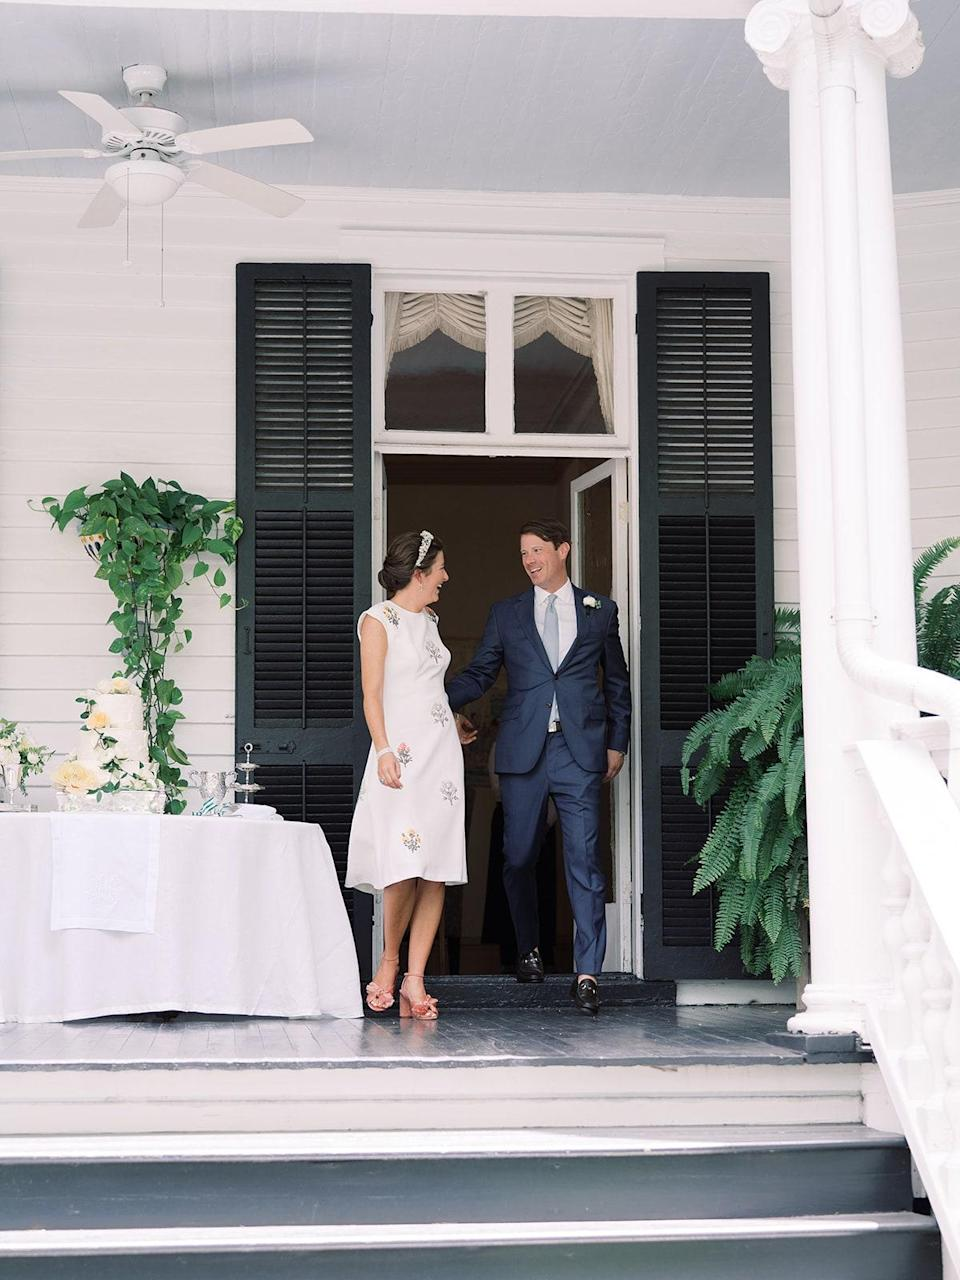 Walking out as Mr. and Mrs! We missed the first announcement because Walker was taking off his socks. I also changed my dress for the reception. This is also the porch where we met and got engaged.